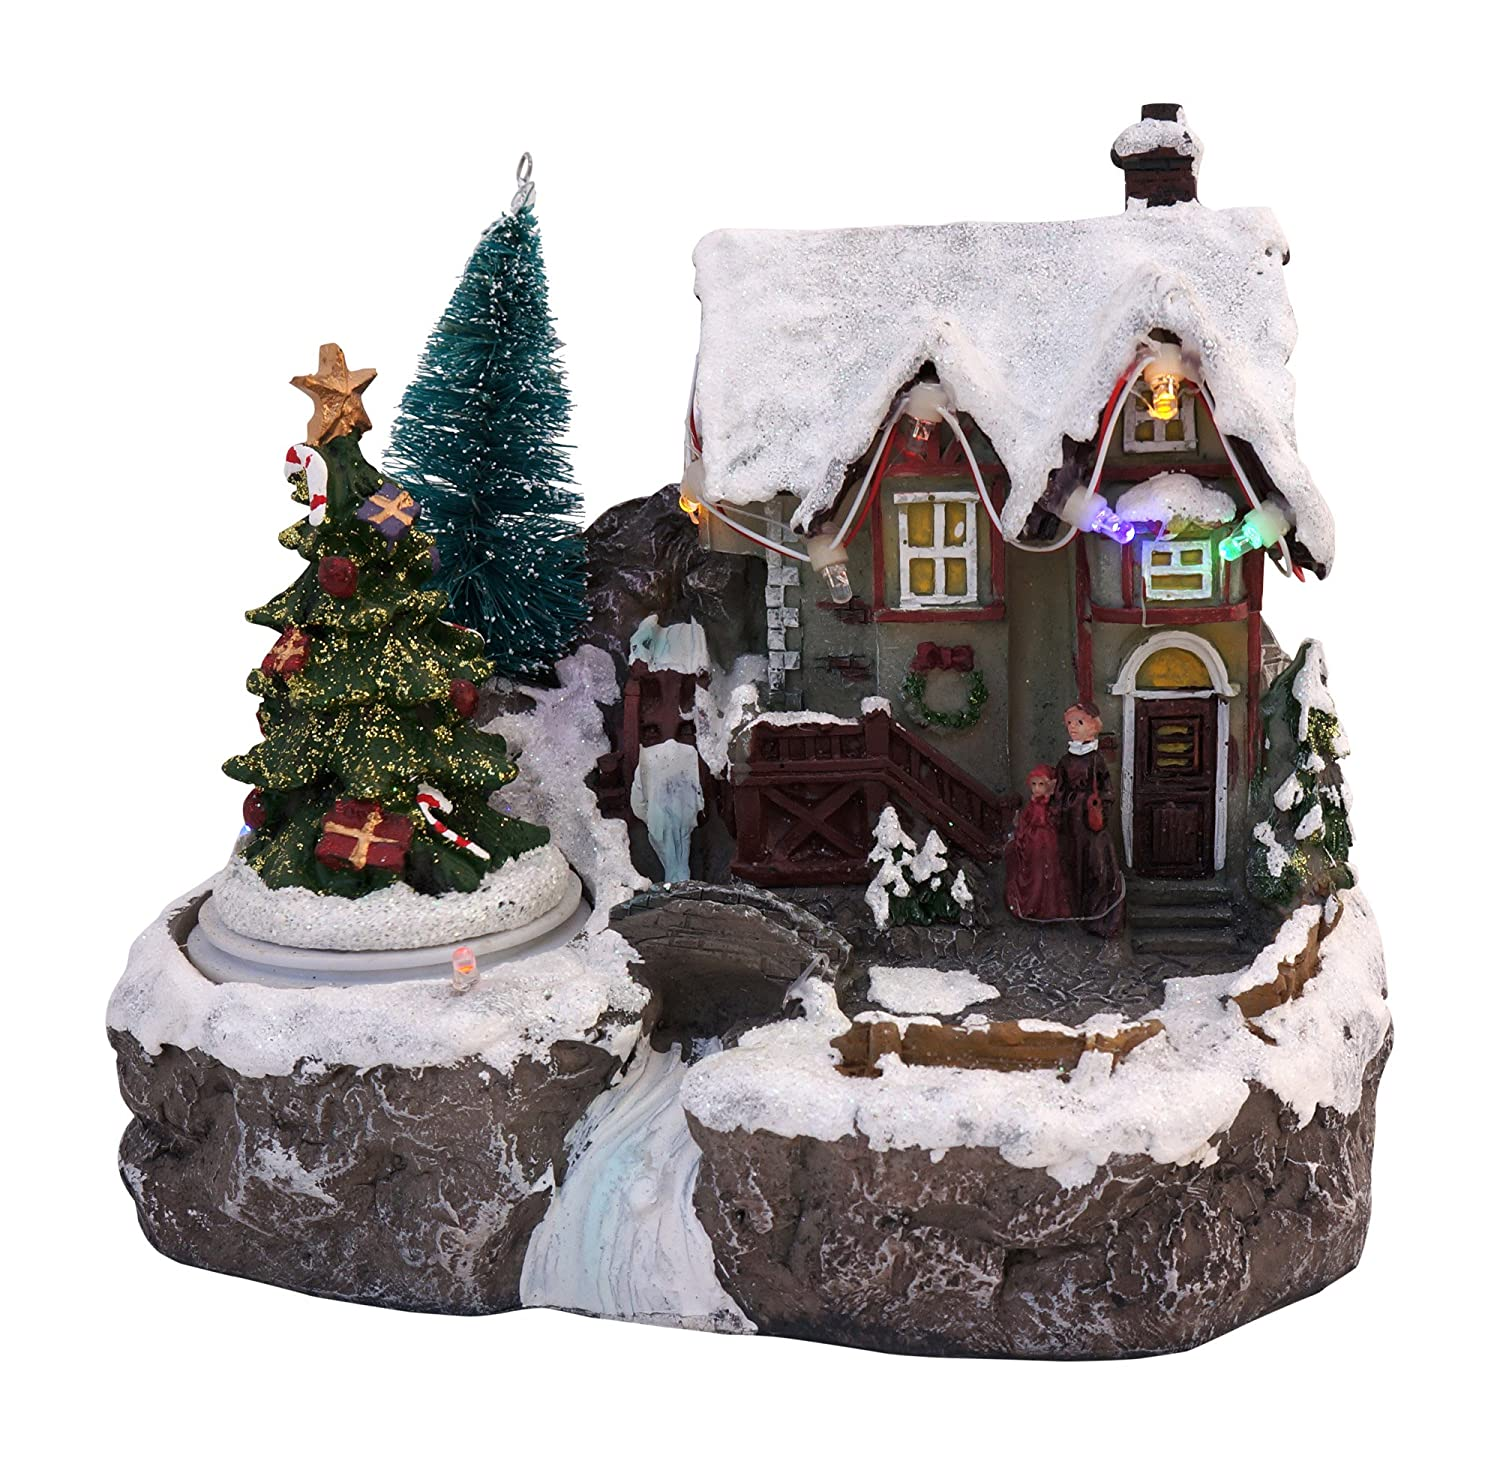 amazoncom led lighted snowy christmas village animated winter house scenes spinning tree home kitchen - Animated Christmas Village